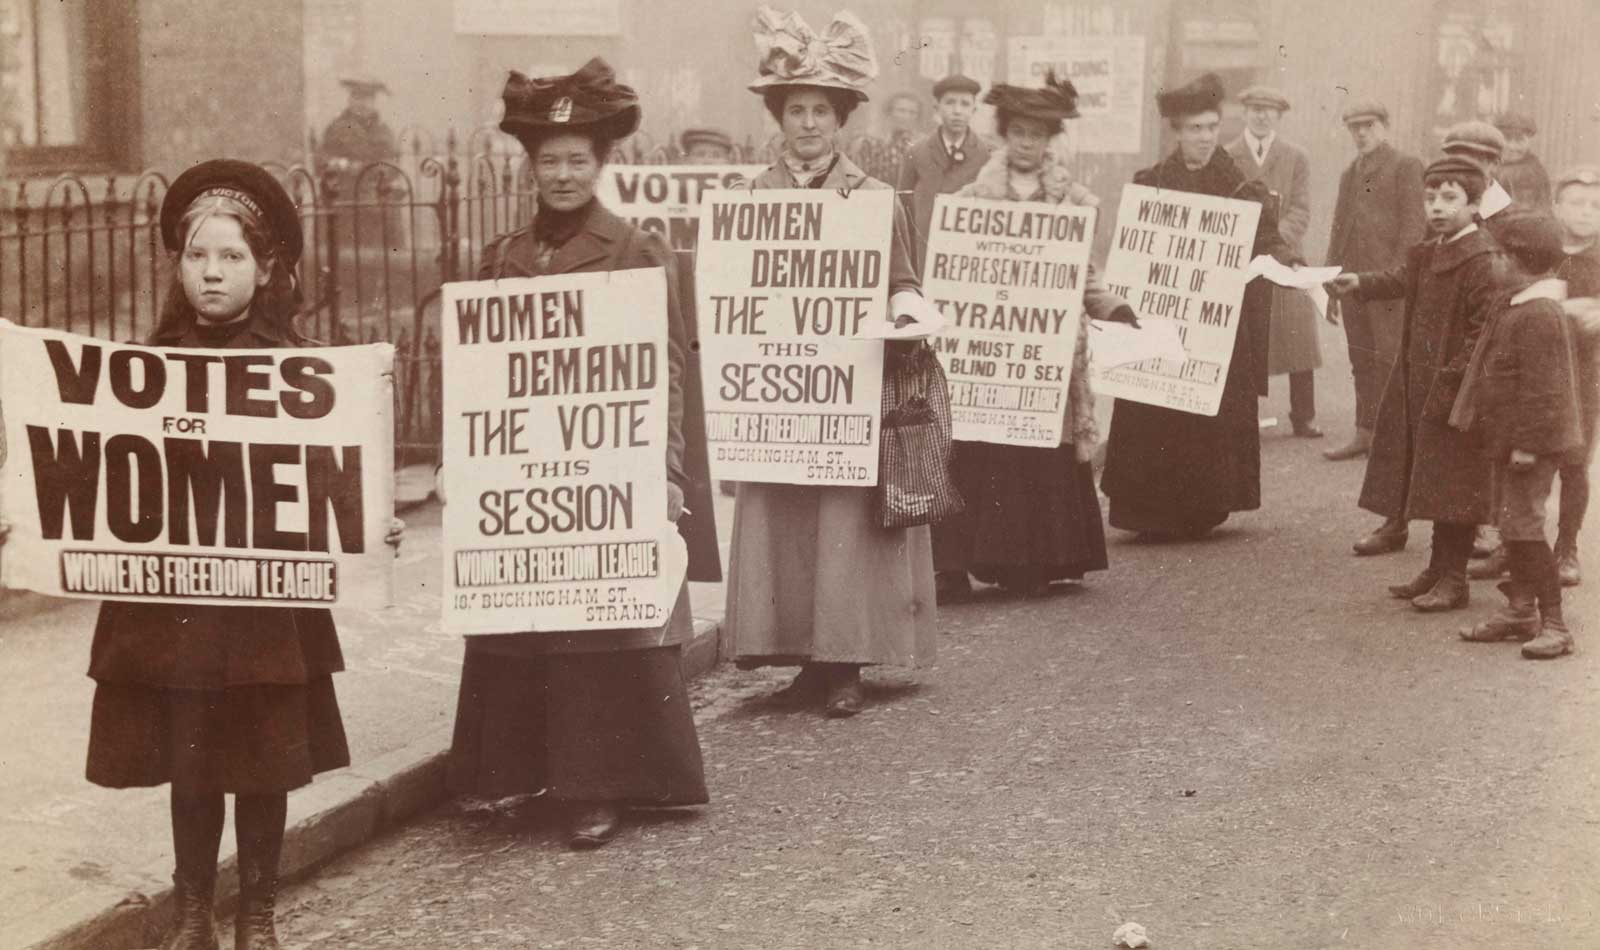 Votes for Women is a year celebrating female suffrage.